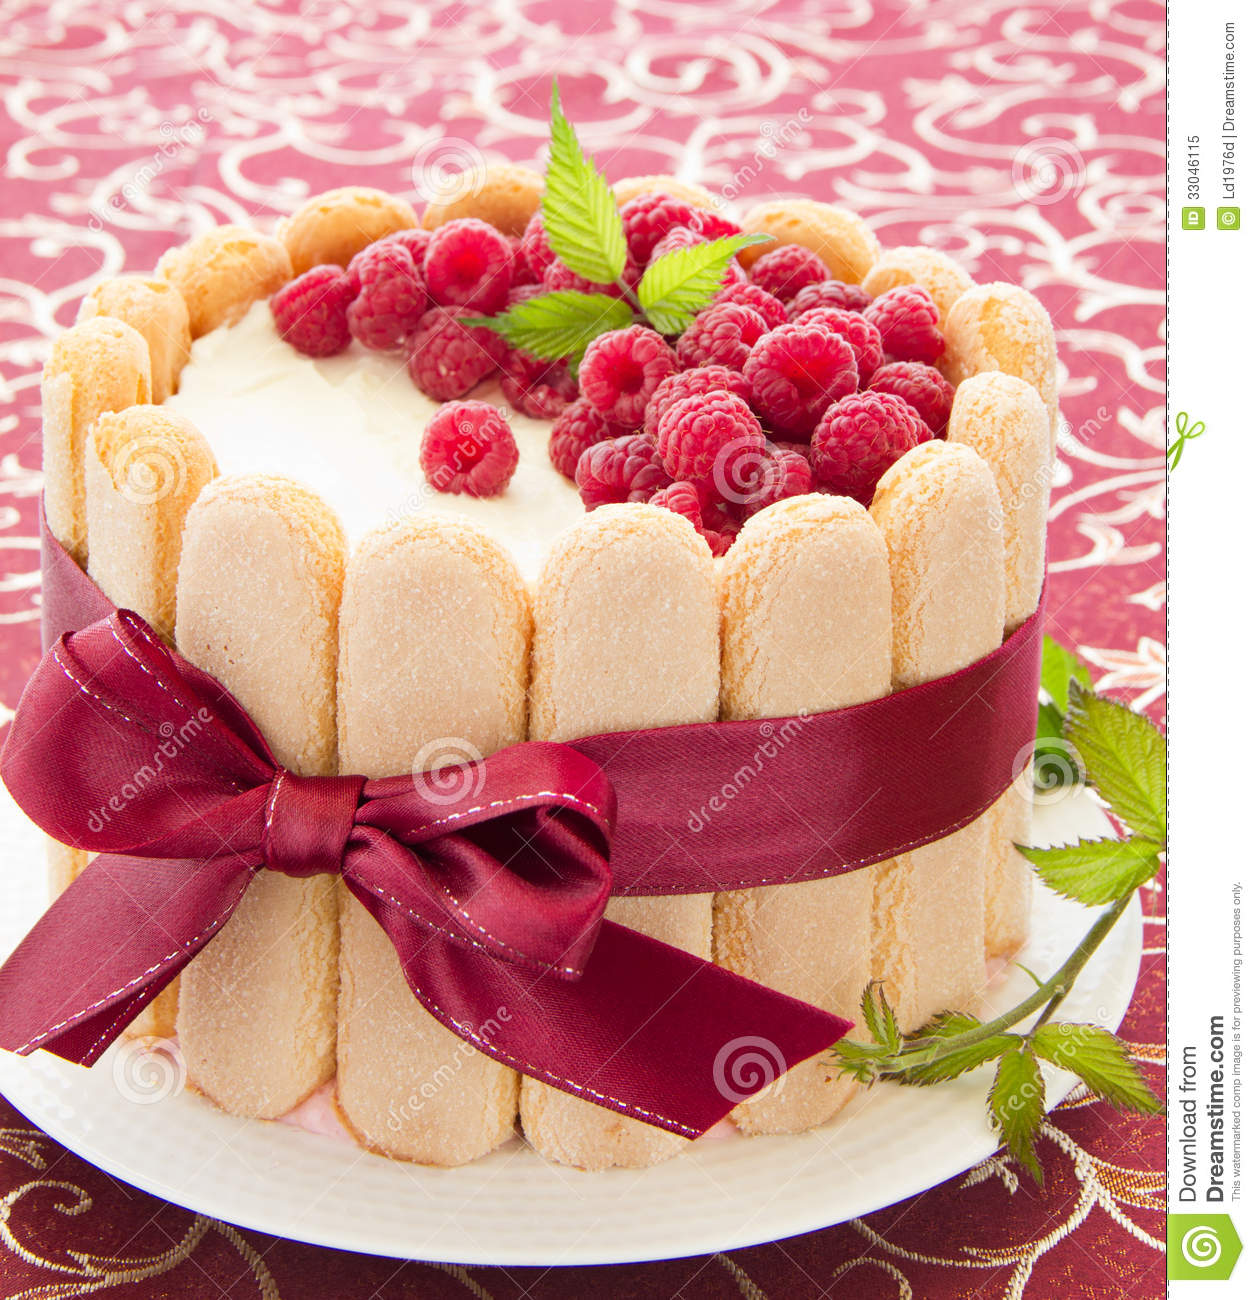 Cake Charlotte Royalty Free Stock Photo Image 33046115